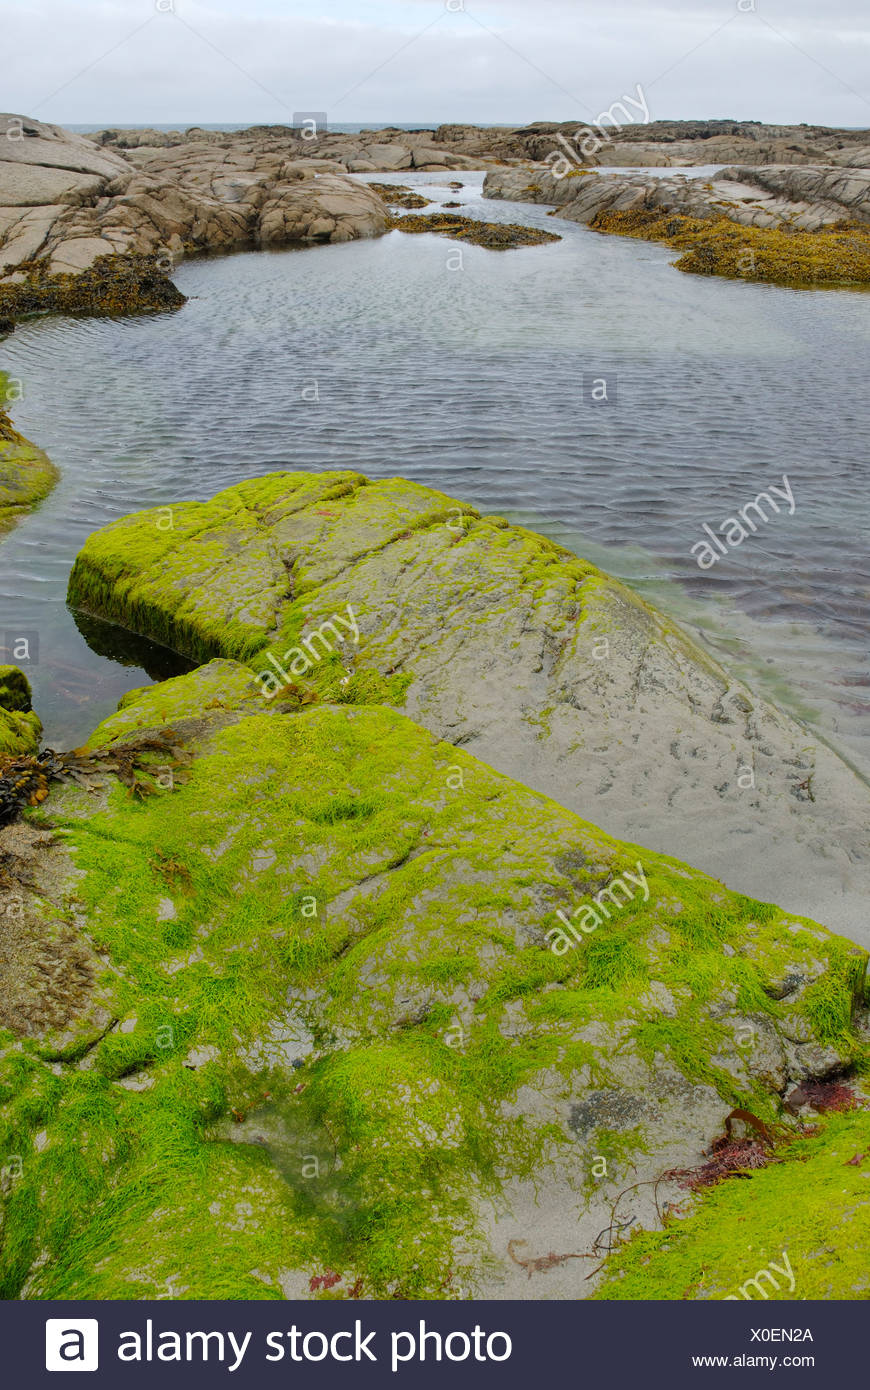 Tidal ponds at the Atlanic coast of Donegal at low tide with granite rocks covered by llight green algae, Ireland Stock Photo